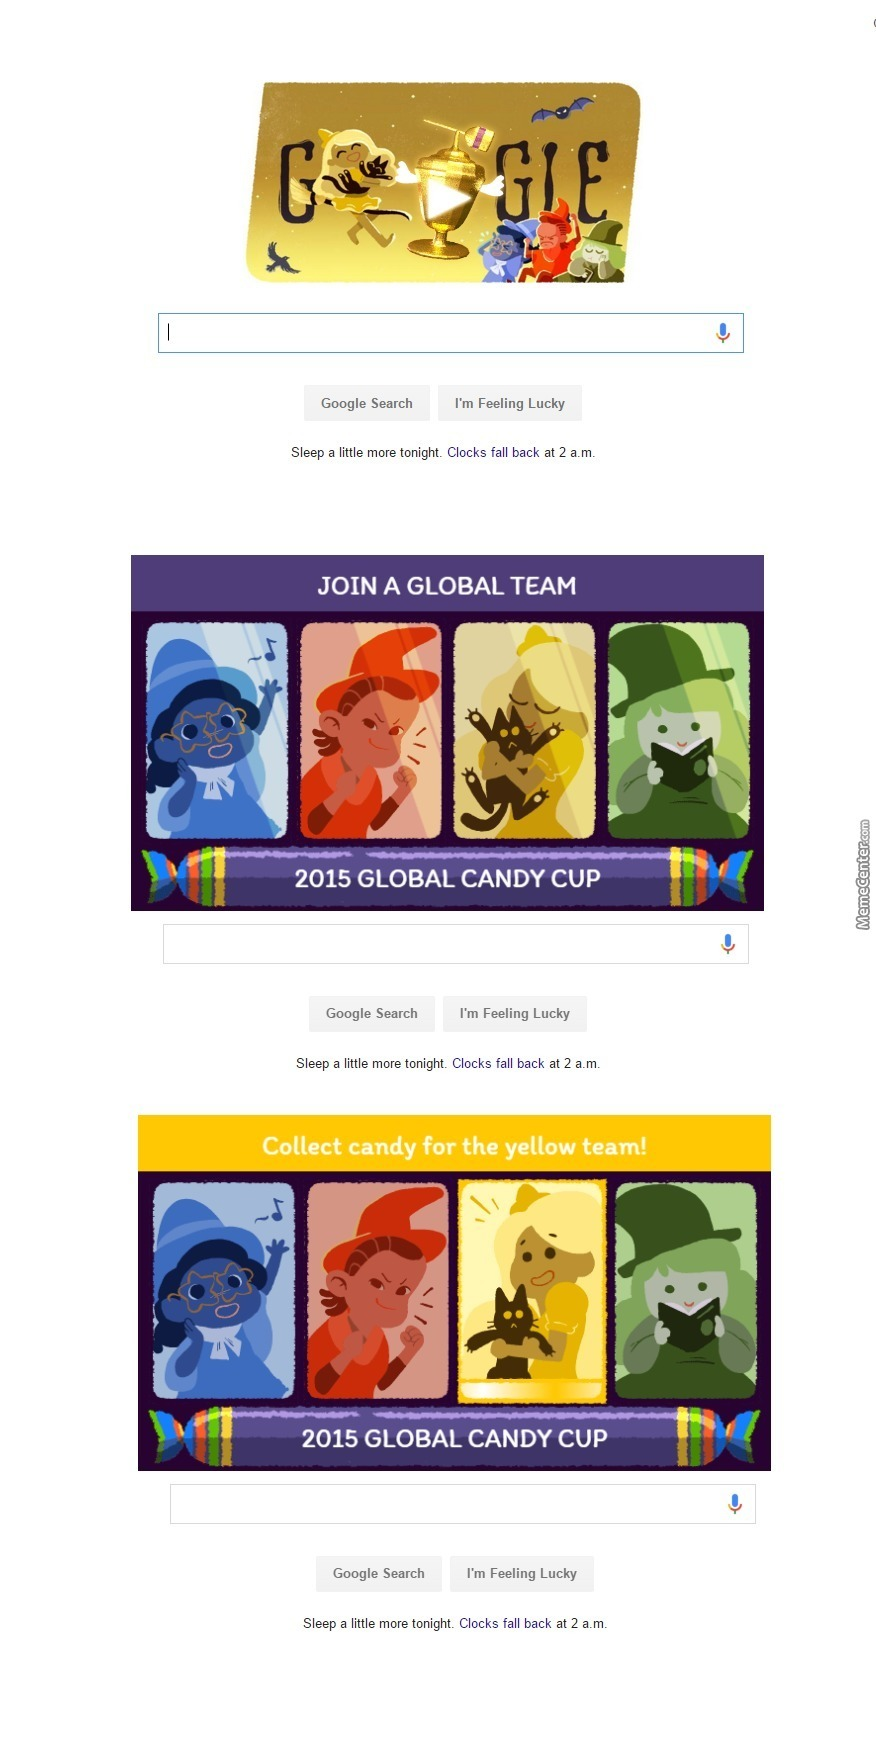 google halloween global candy cup game see source to play the game